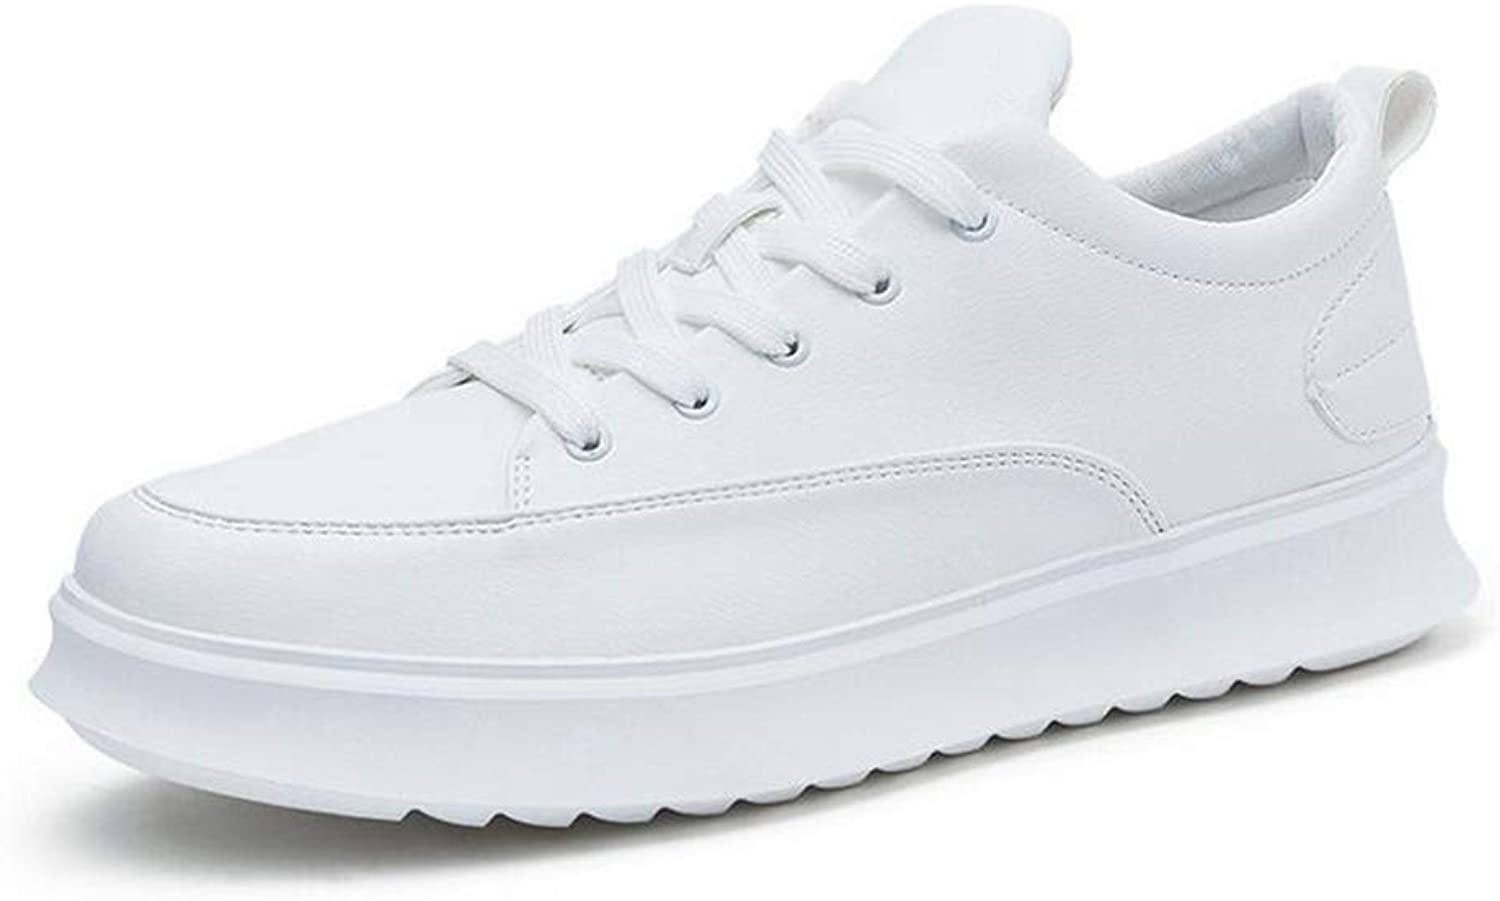 Y-H Men's shoes, Flat Deck shoes, Spring Fall Sneakers Casual shoes, Walking Gym shoes, Student Slip-Ons Running shoes (color   White, Size   41)